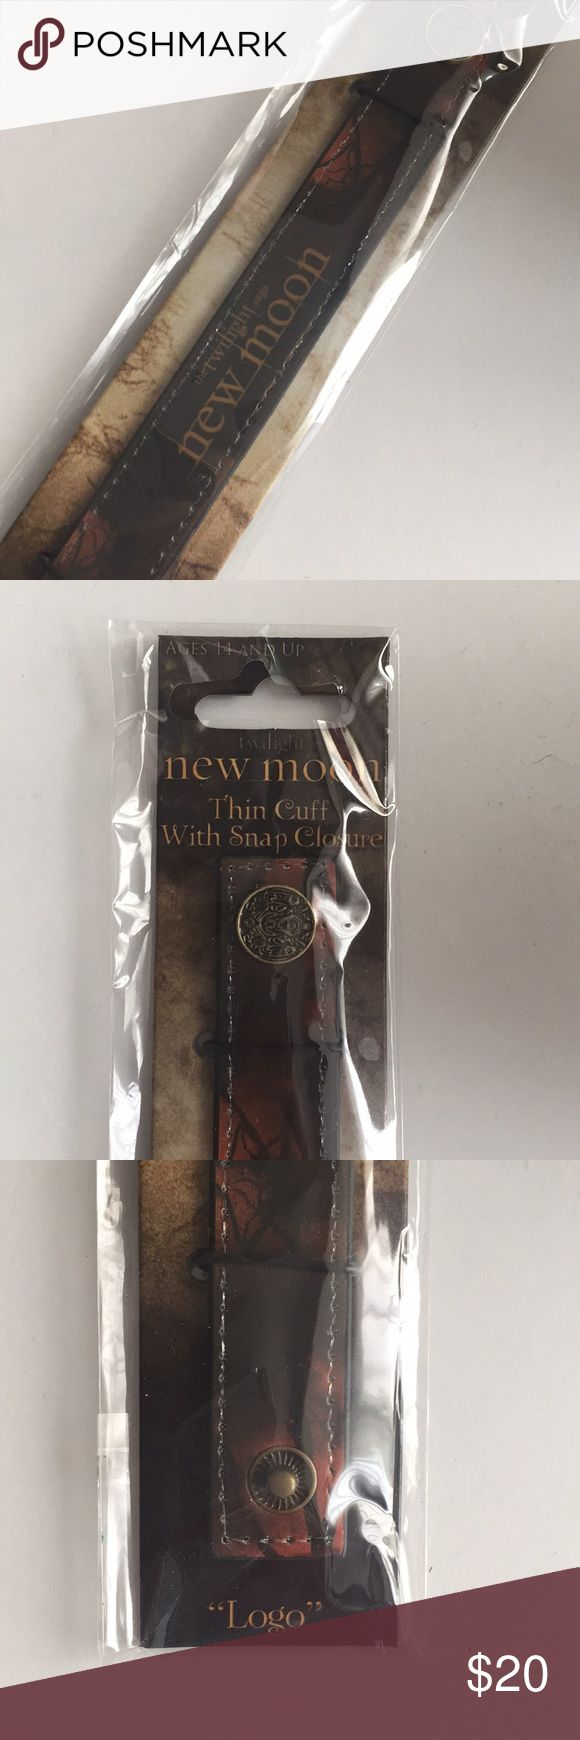 Twilight New Moon 🌚 Movie Logo Thin cuff bracelet Twilight New Moon movie logo 🌙Thin cuff with snap closure bracelet. Length: 7.5 inches. NWT & still in packaging! Great for the collector or movie fan! Non smoking Jewelry Bracelets